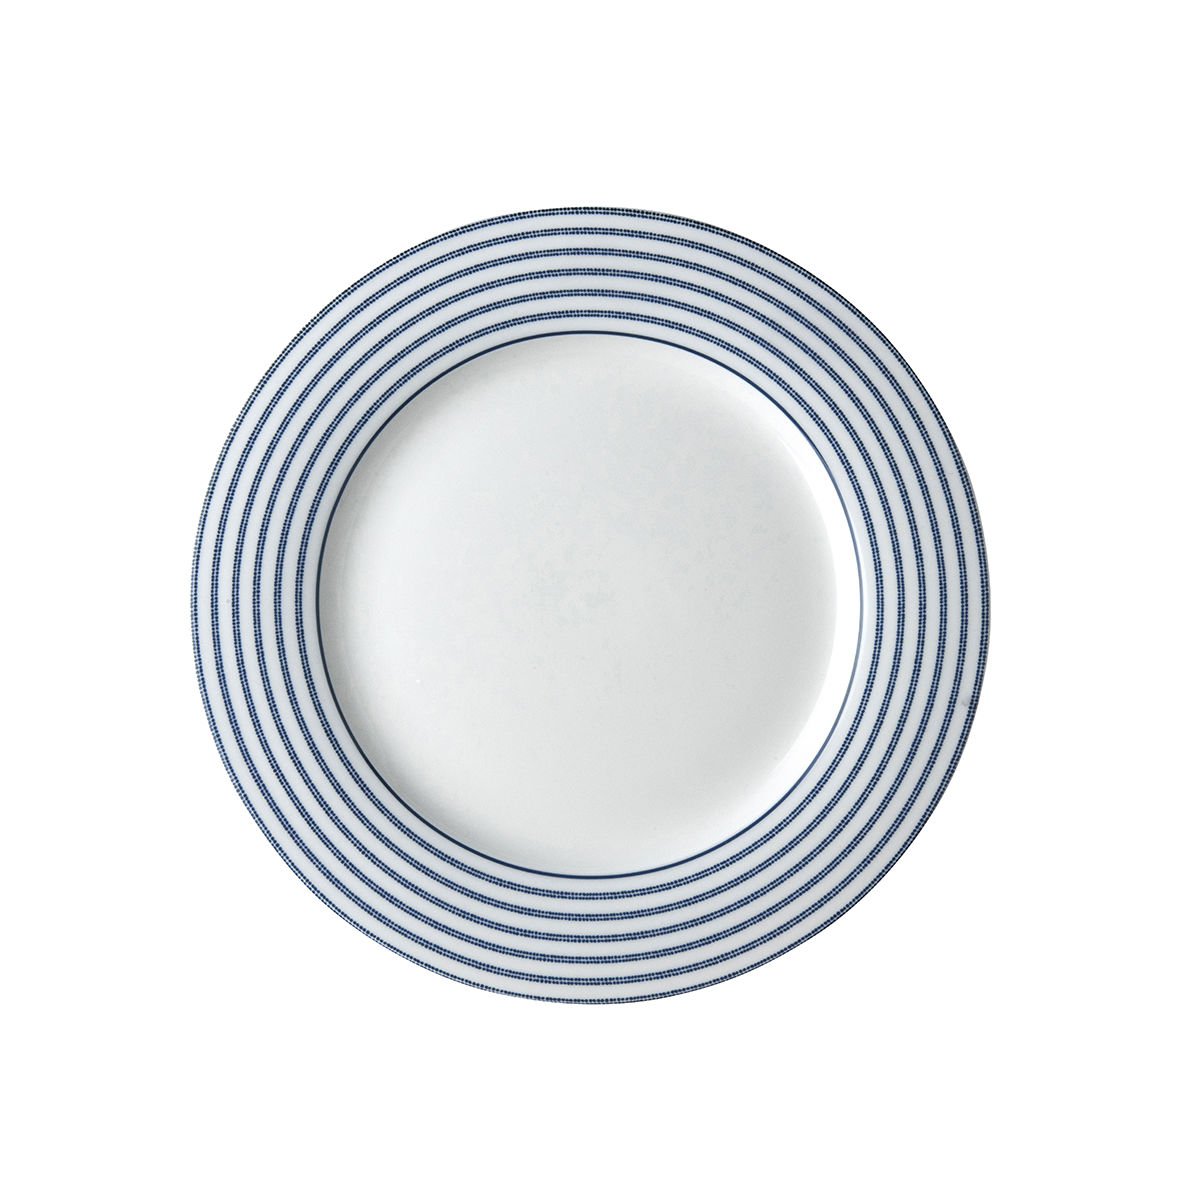 "Laura Ashley 9"" Plate Candy Stripe - product images  of"